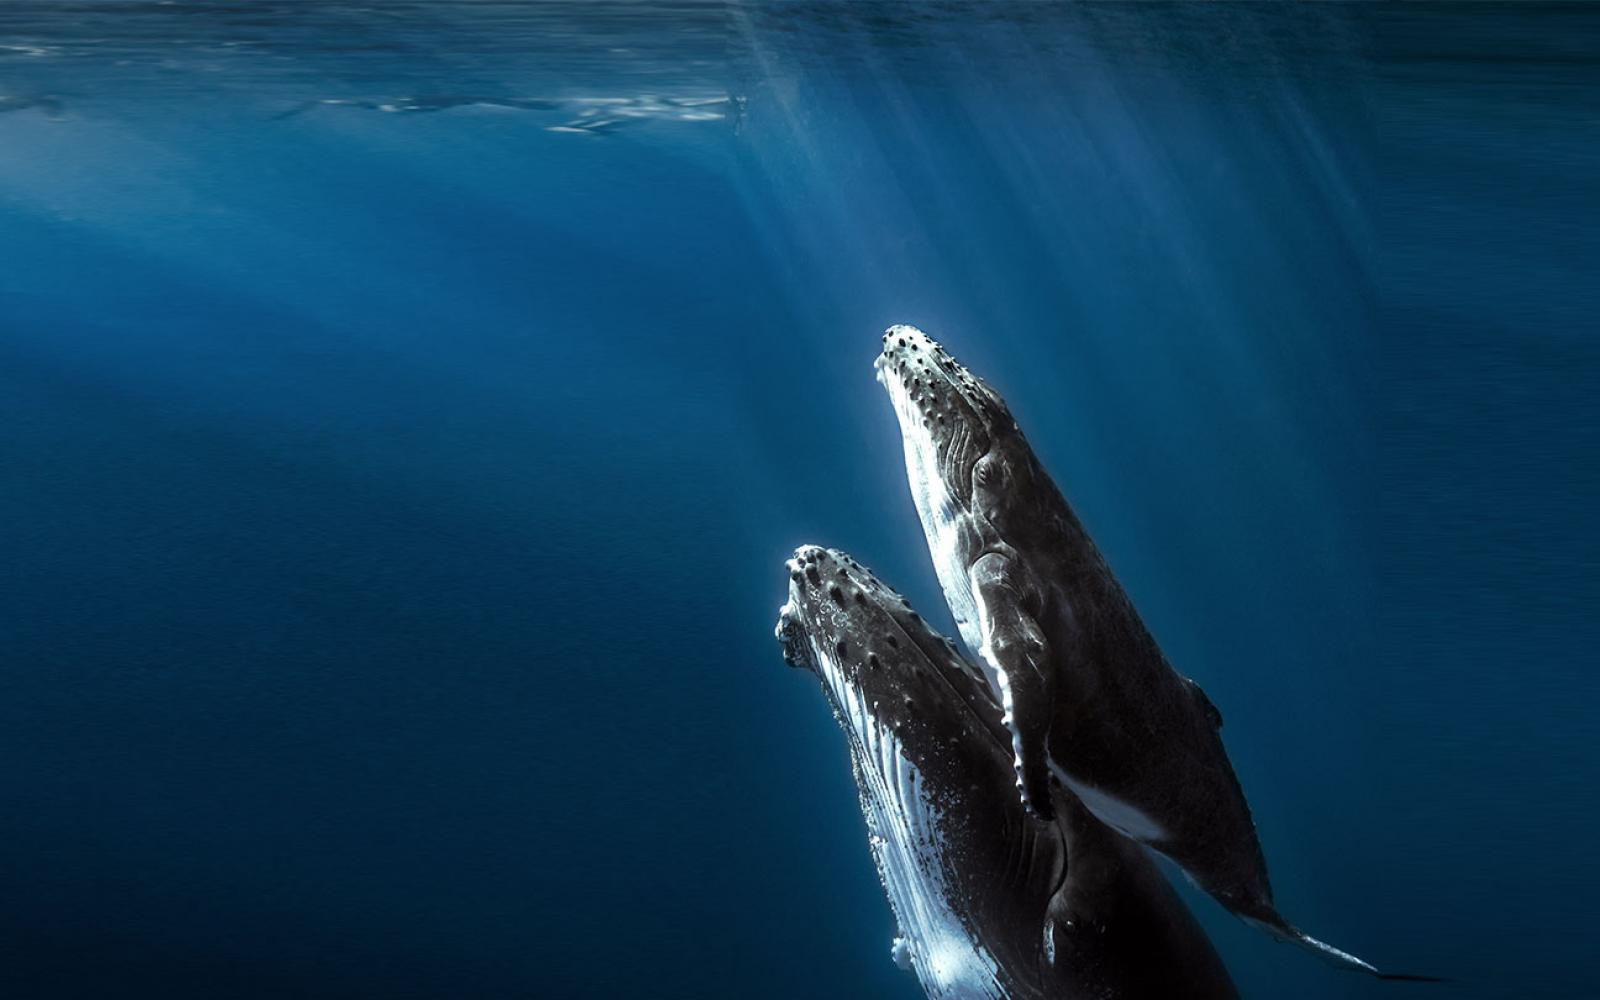 Nature is our only home - Two whales swimming together